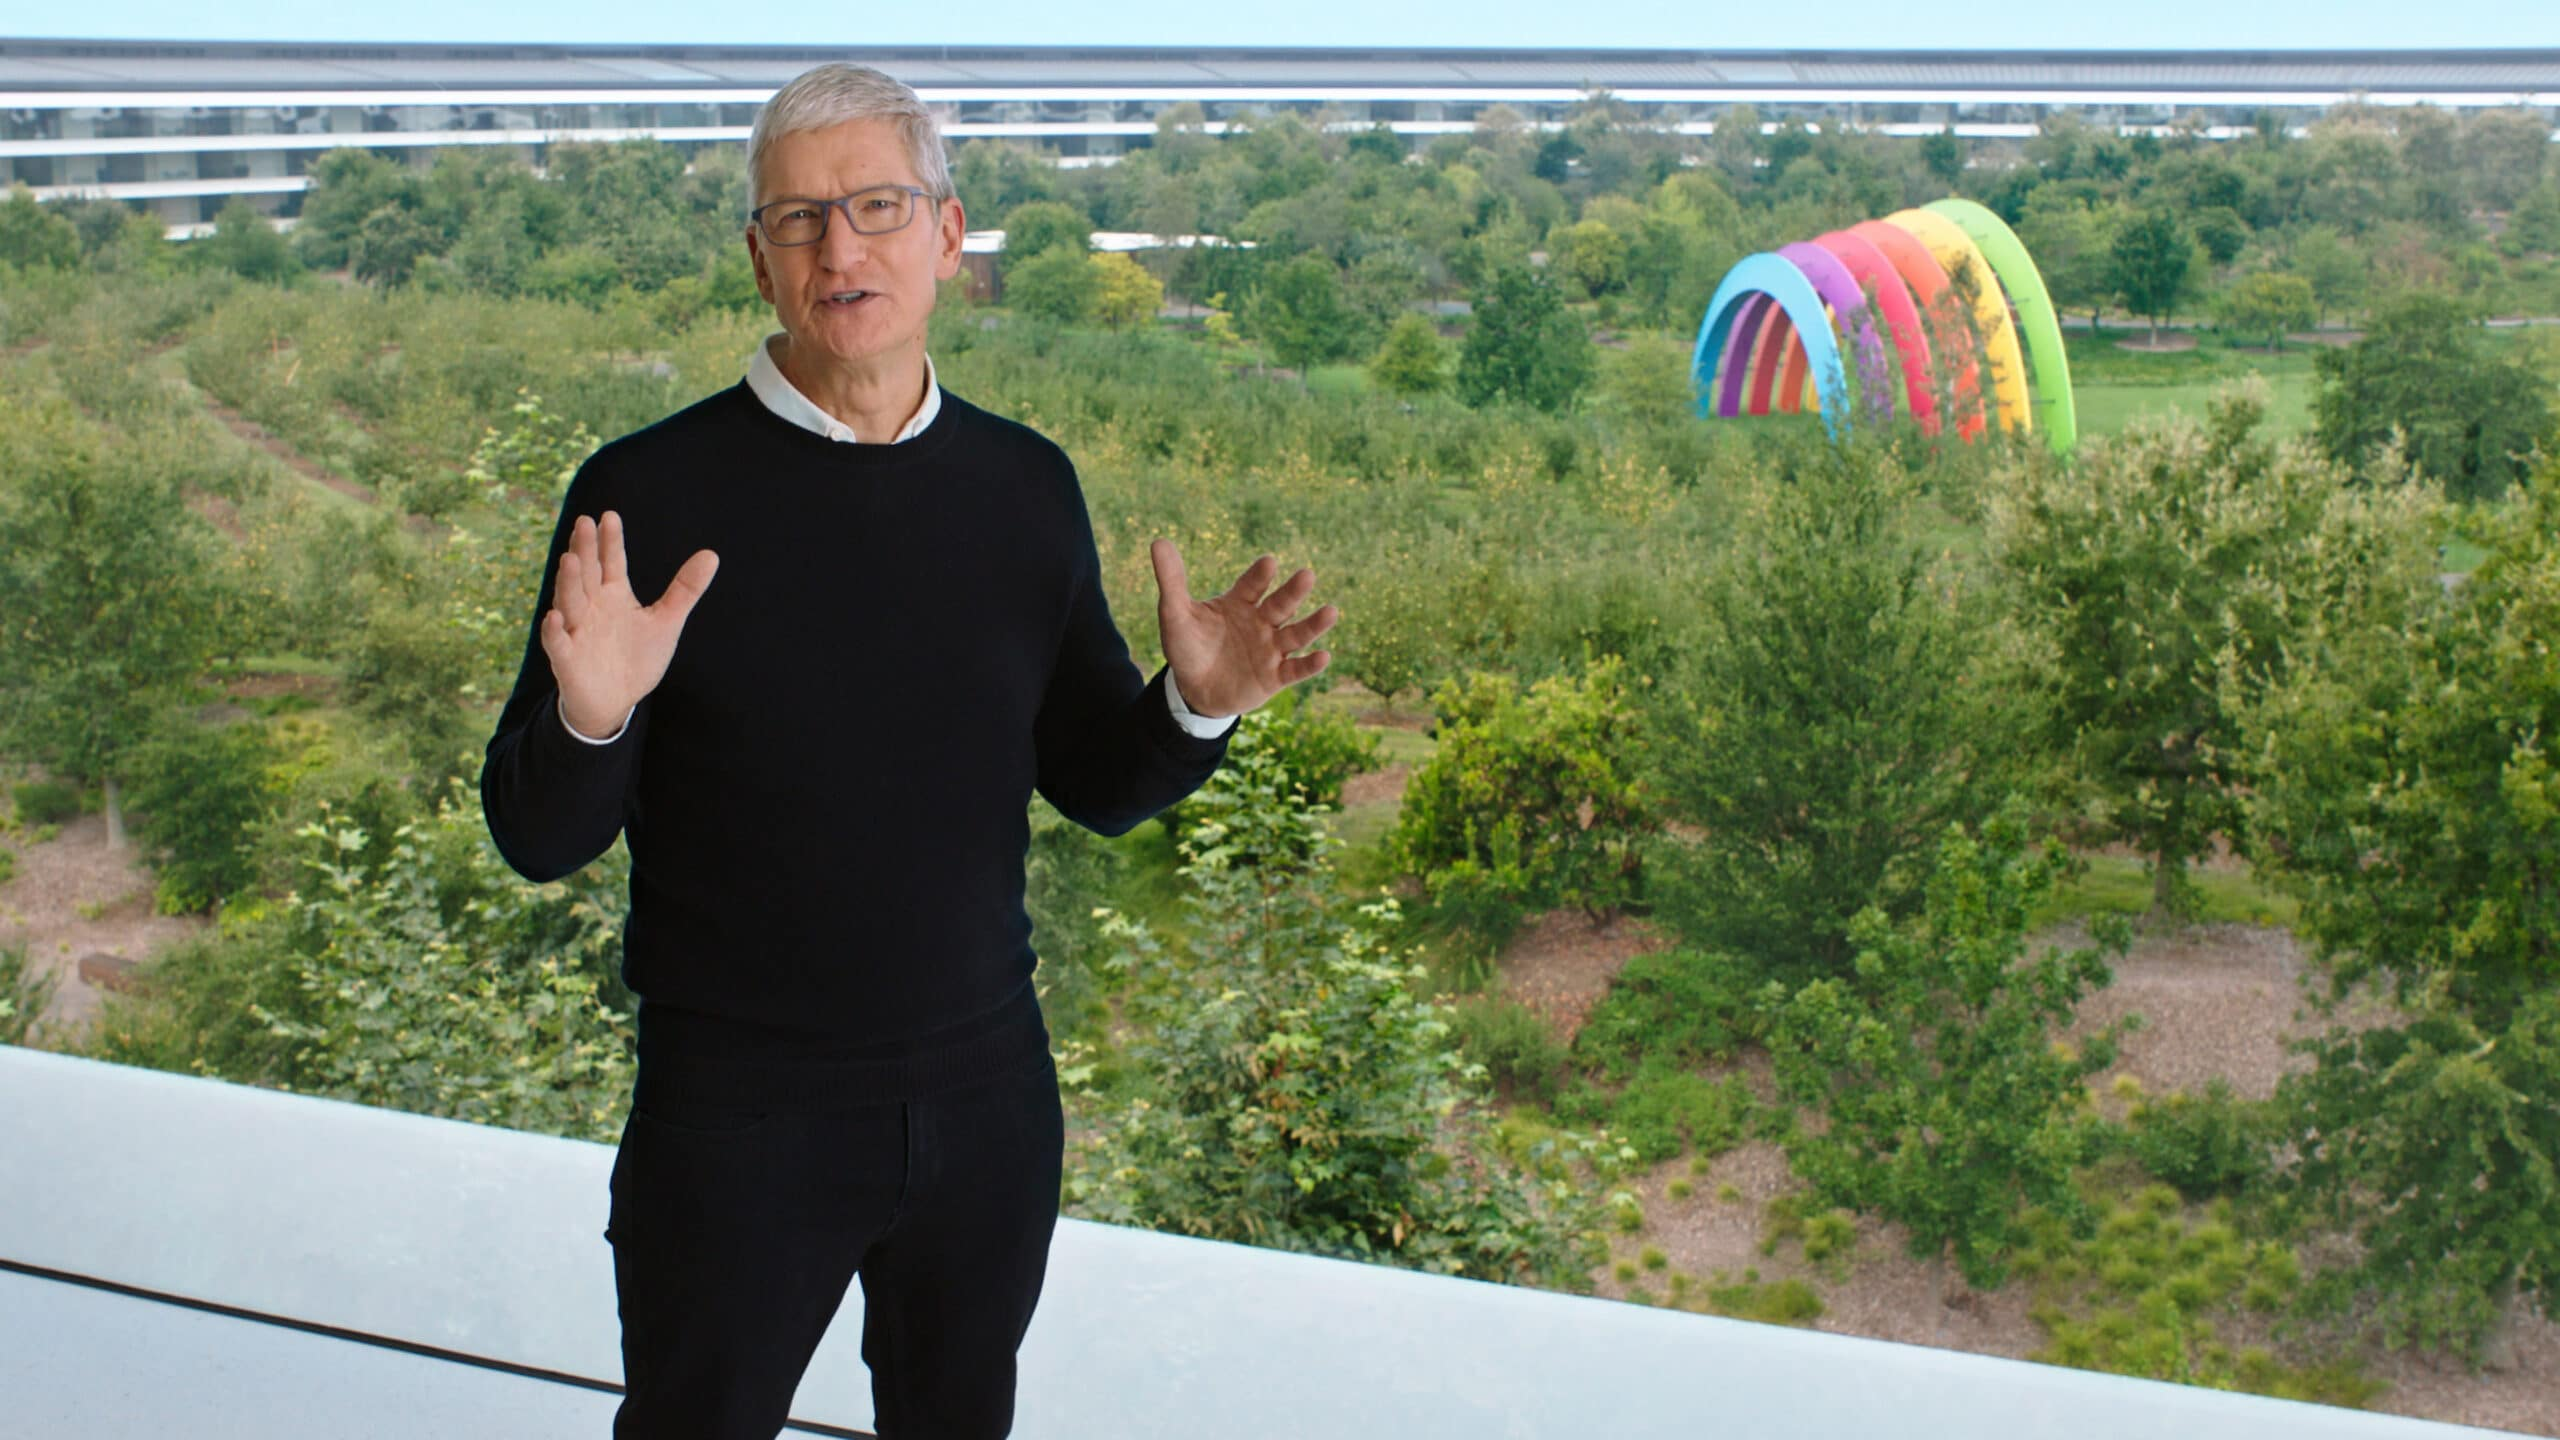 Tim Cook na keynote do evento especial de setembro de 2020